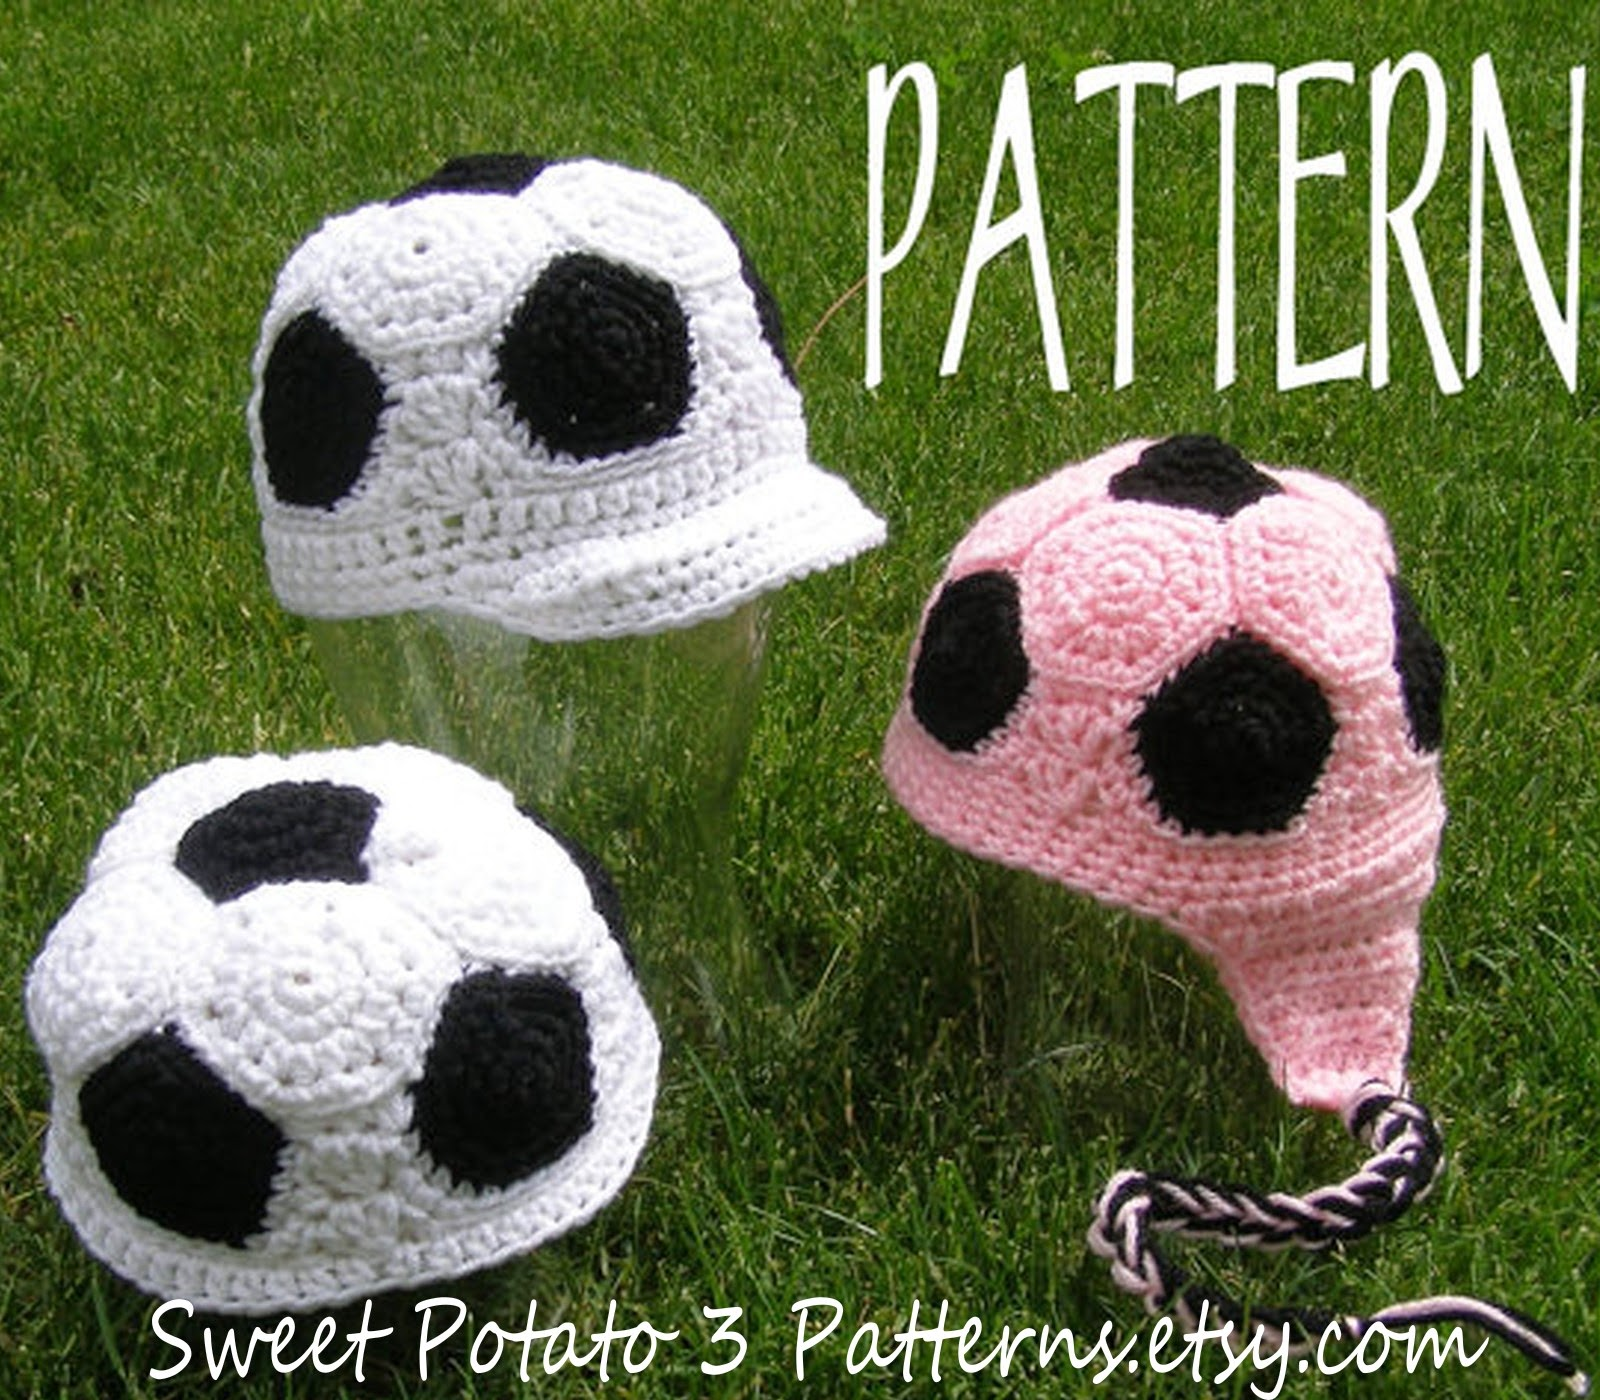 Soccer Ball Crochet Hat Pattern Sweet Potato 3